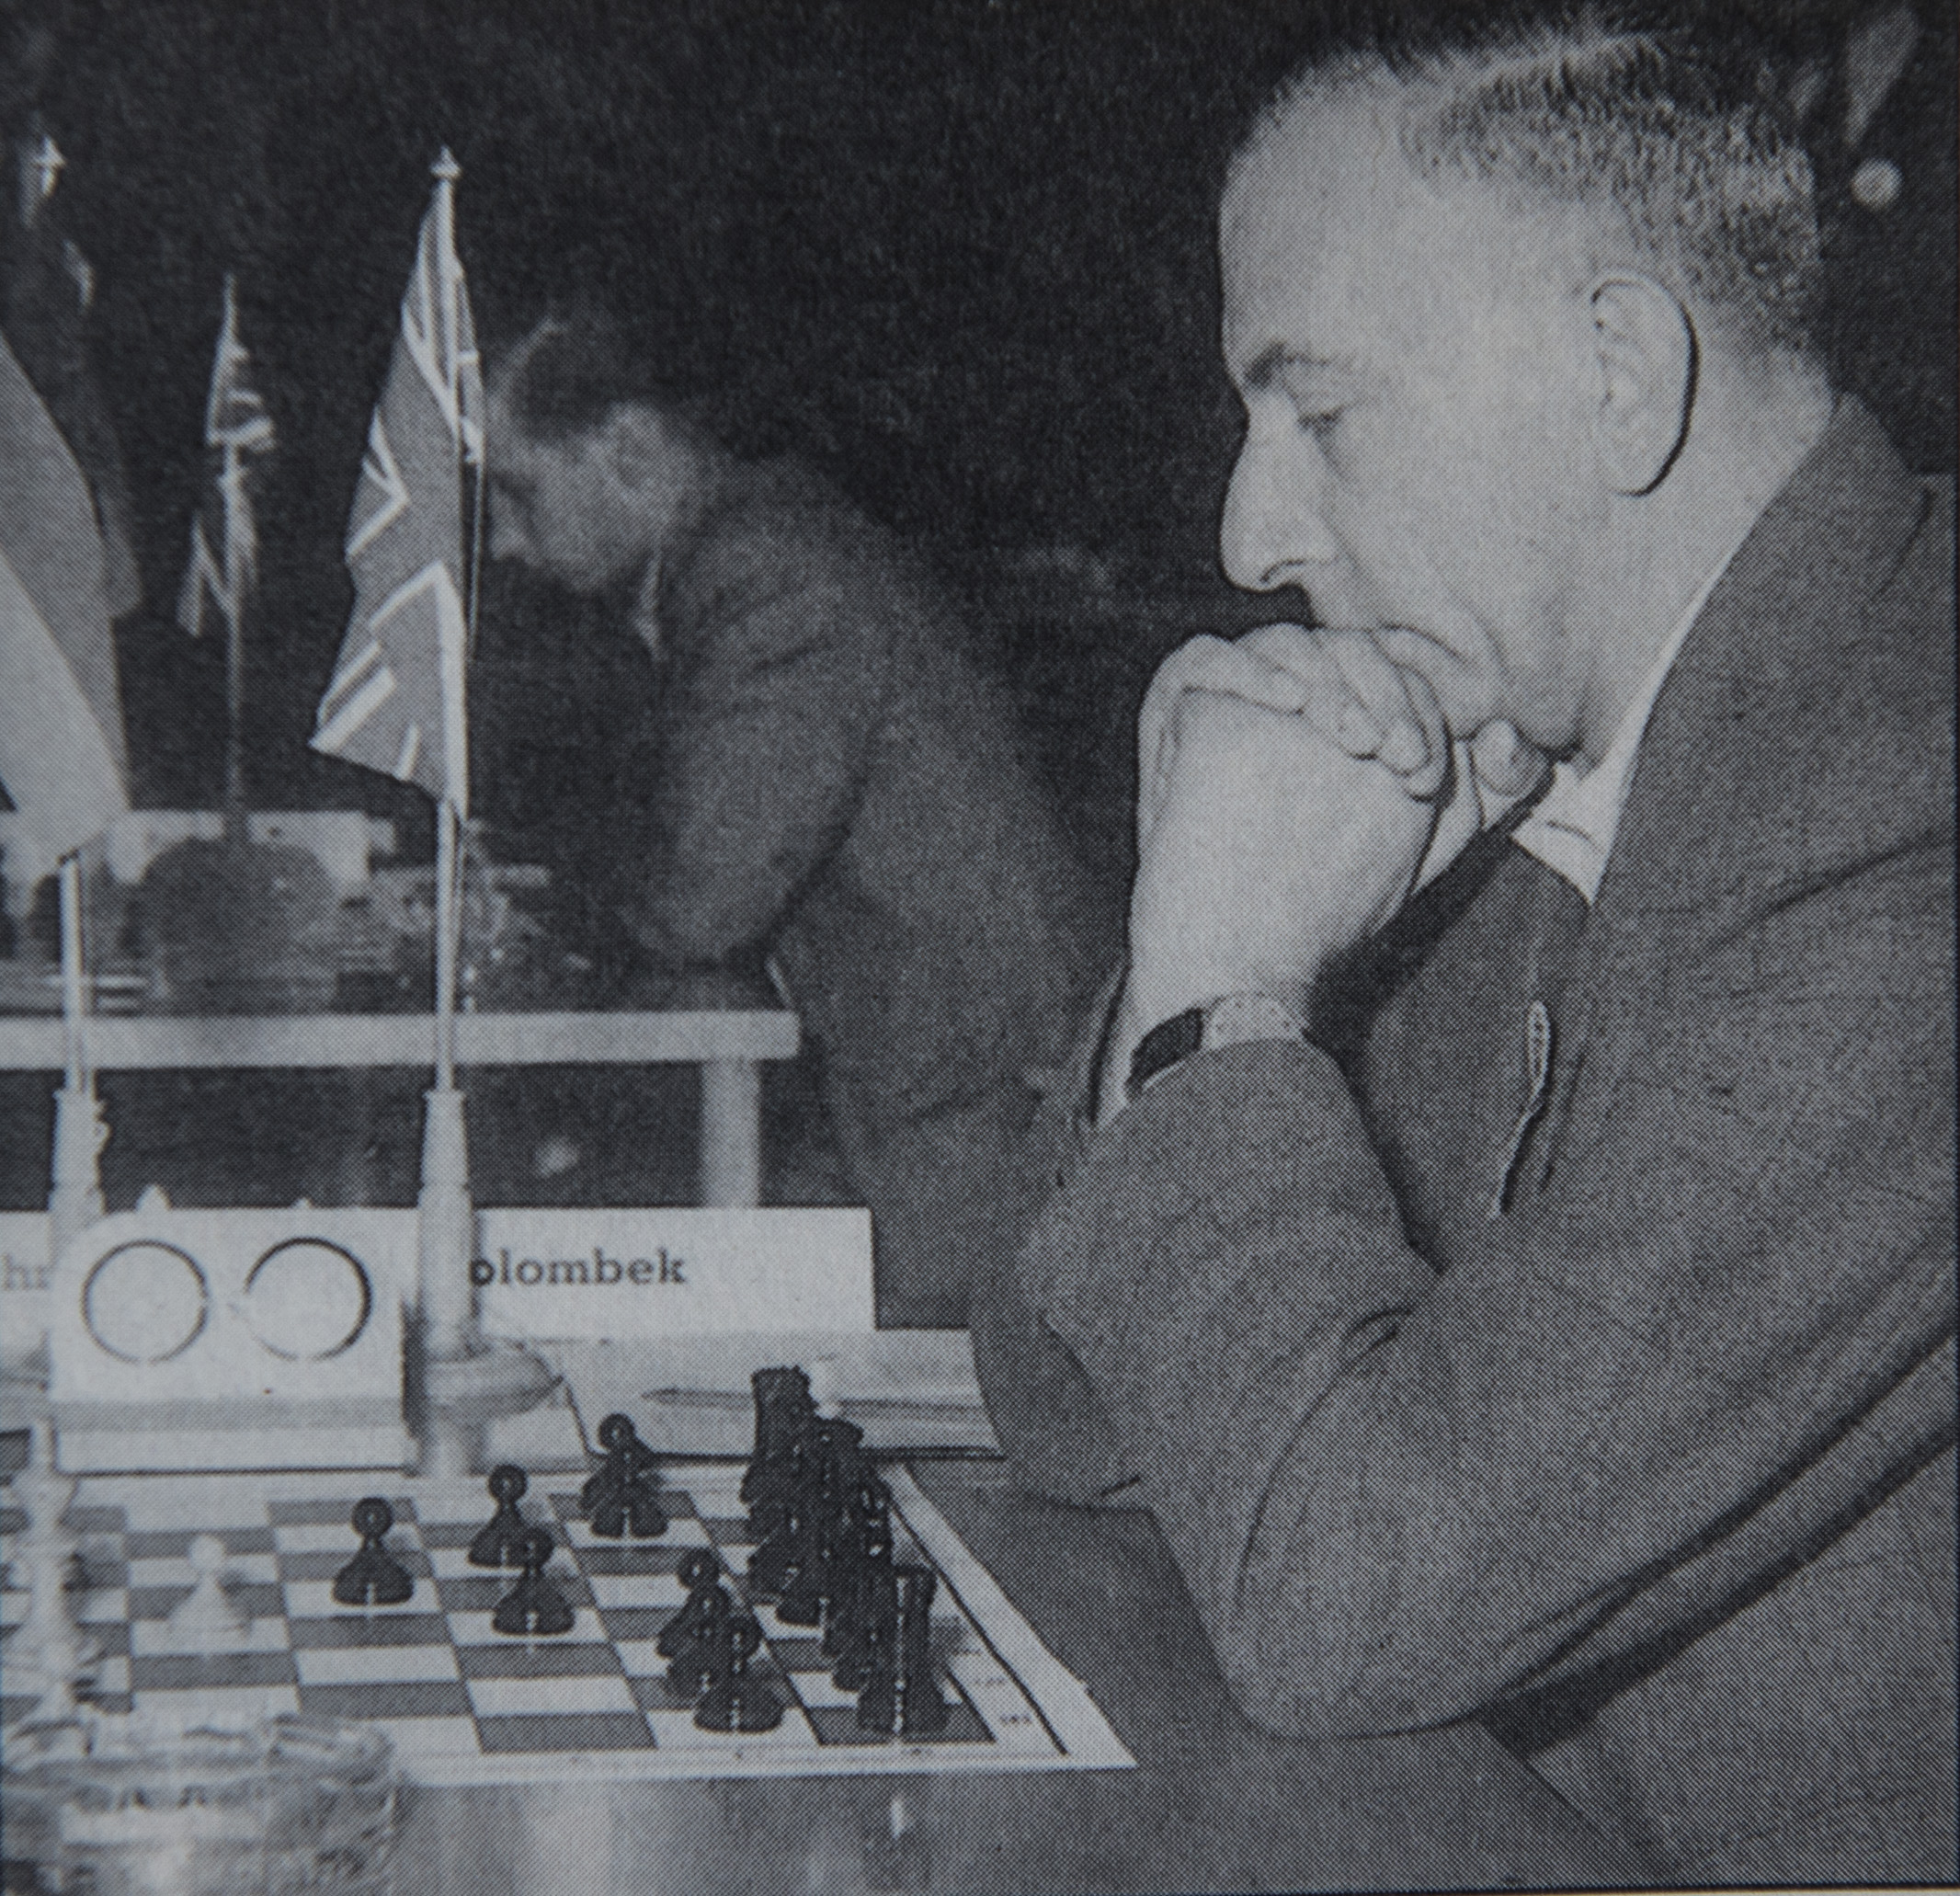 Harry Golombek during a team event, Jonathan Penrose on the adjacent board.